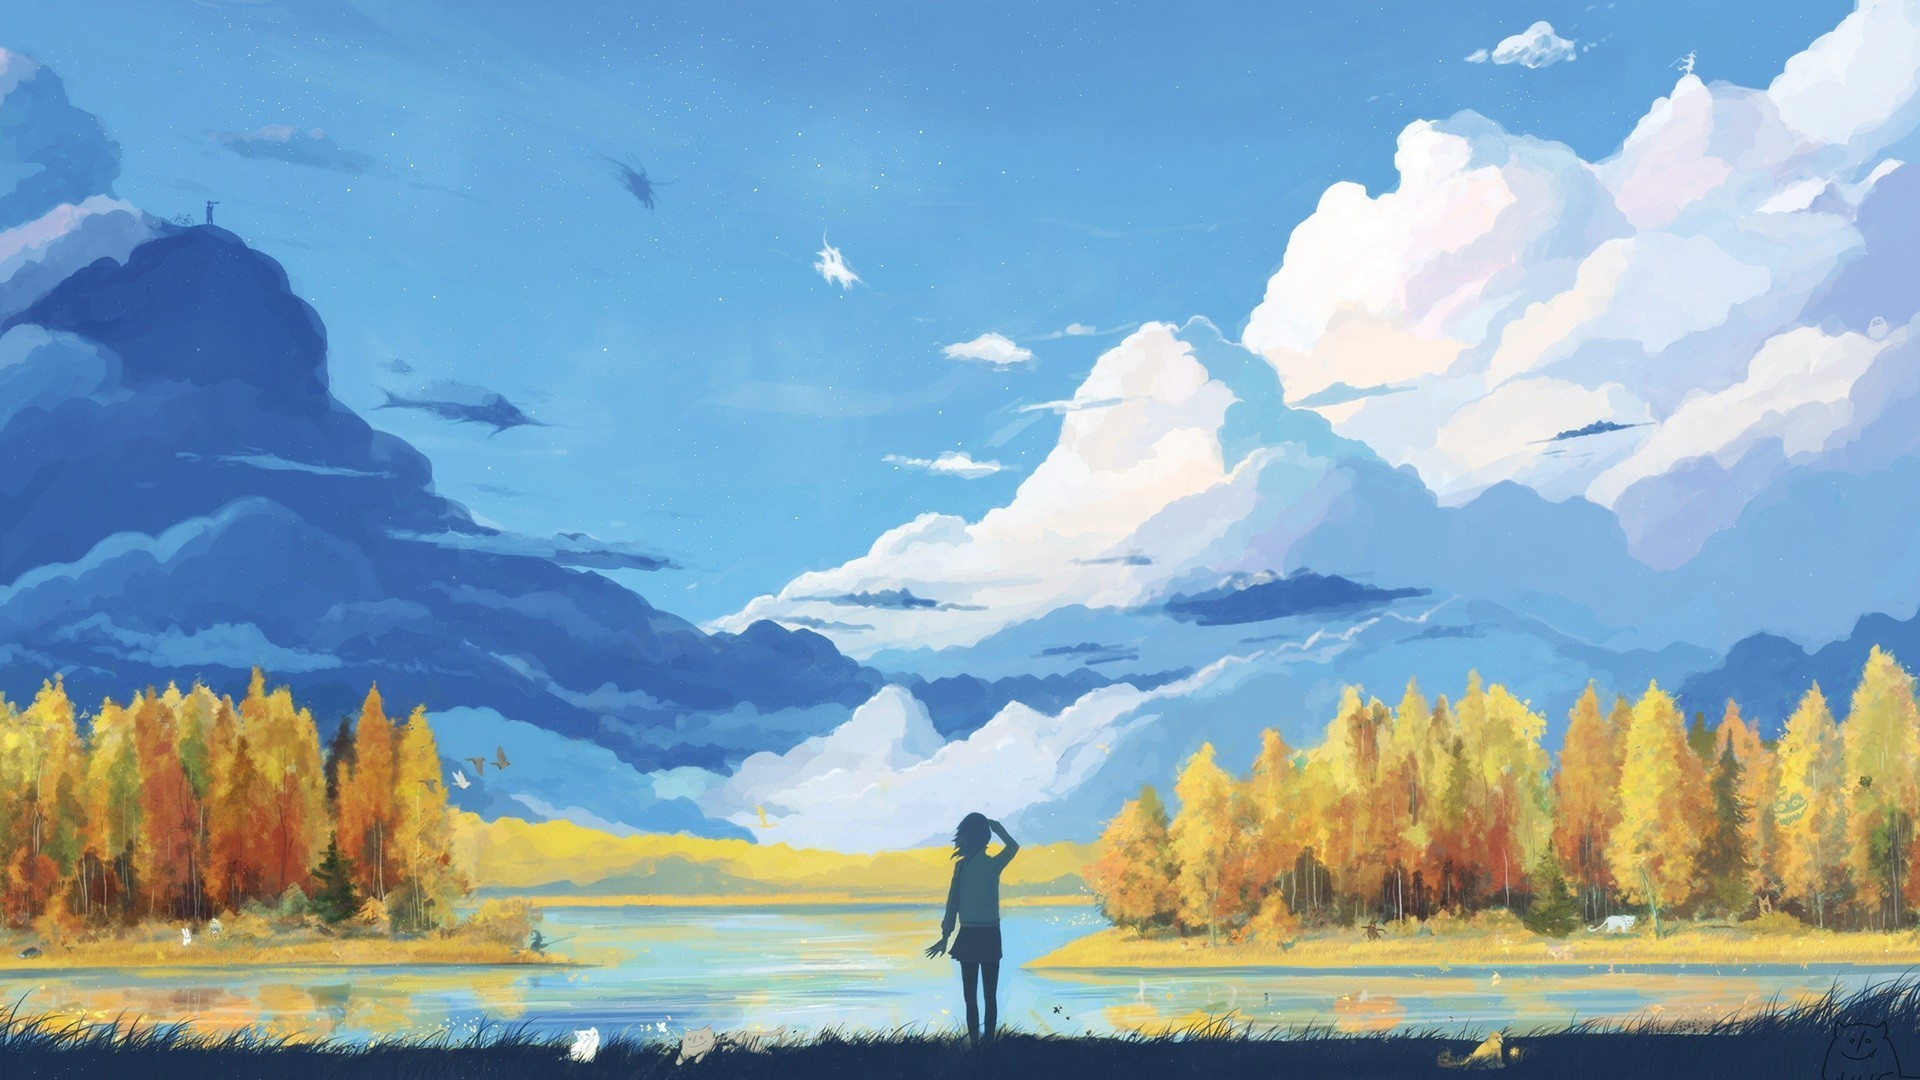 Res: 1920x1080, Anime Nature Wallpaper 57